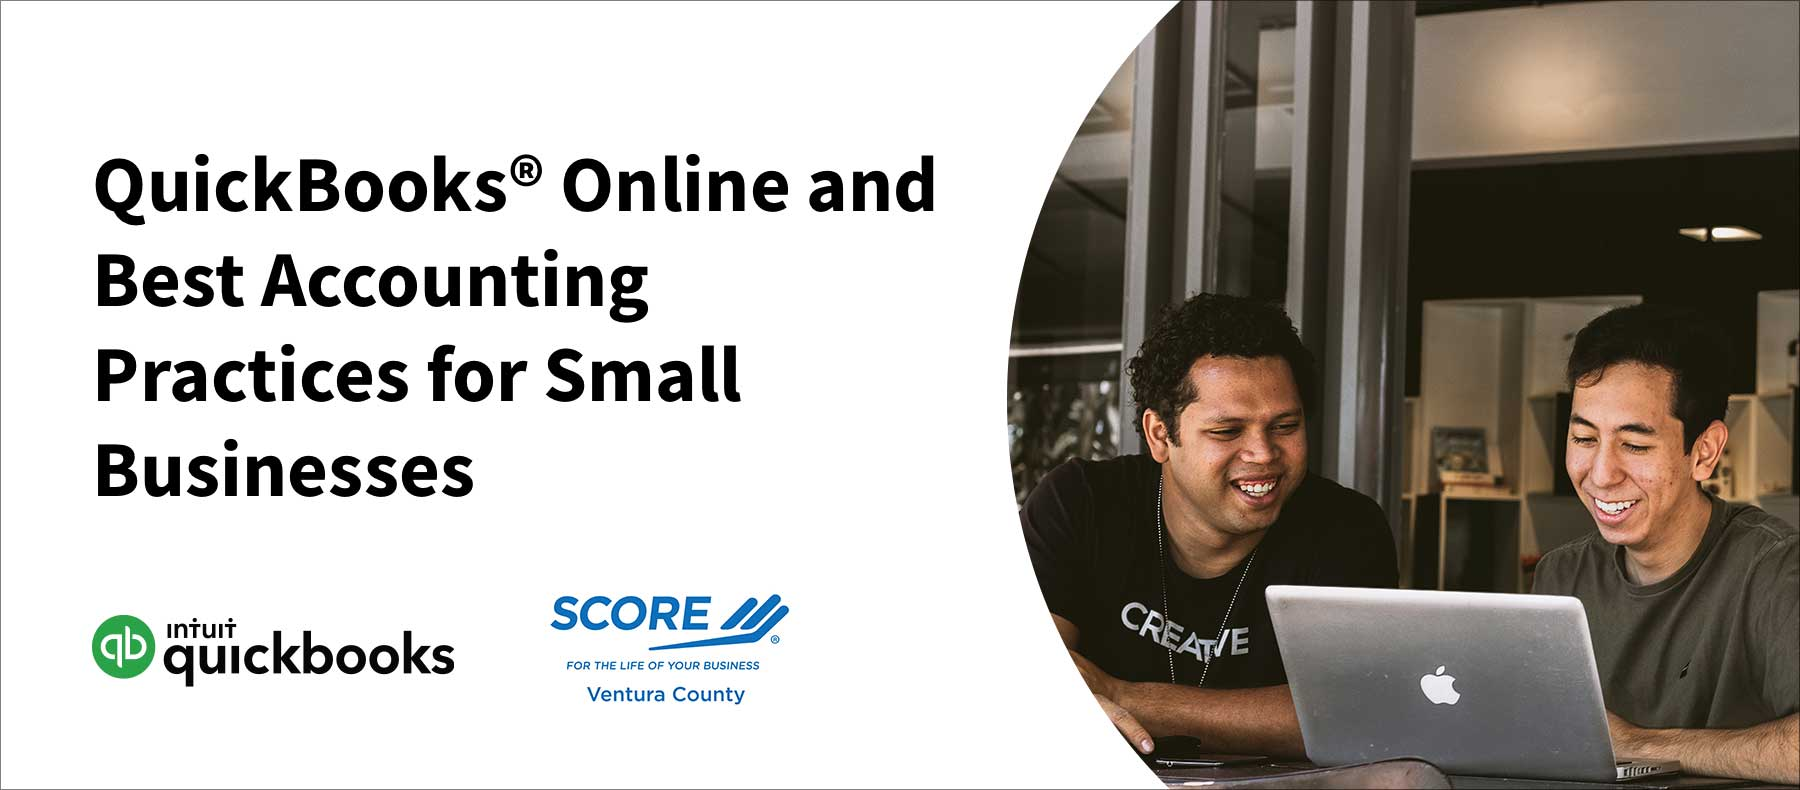 JRB score feataured image 10.12 QBO for small businesses